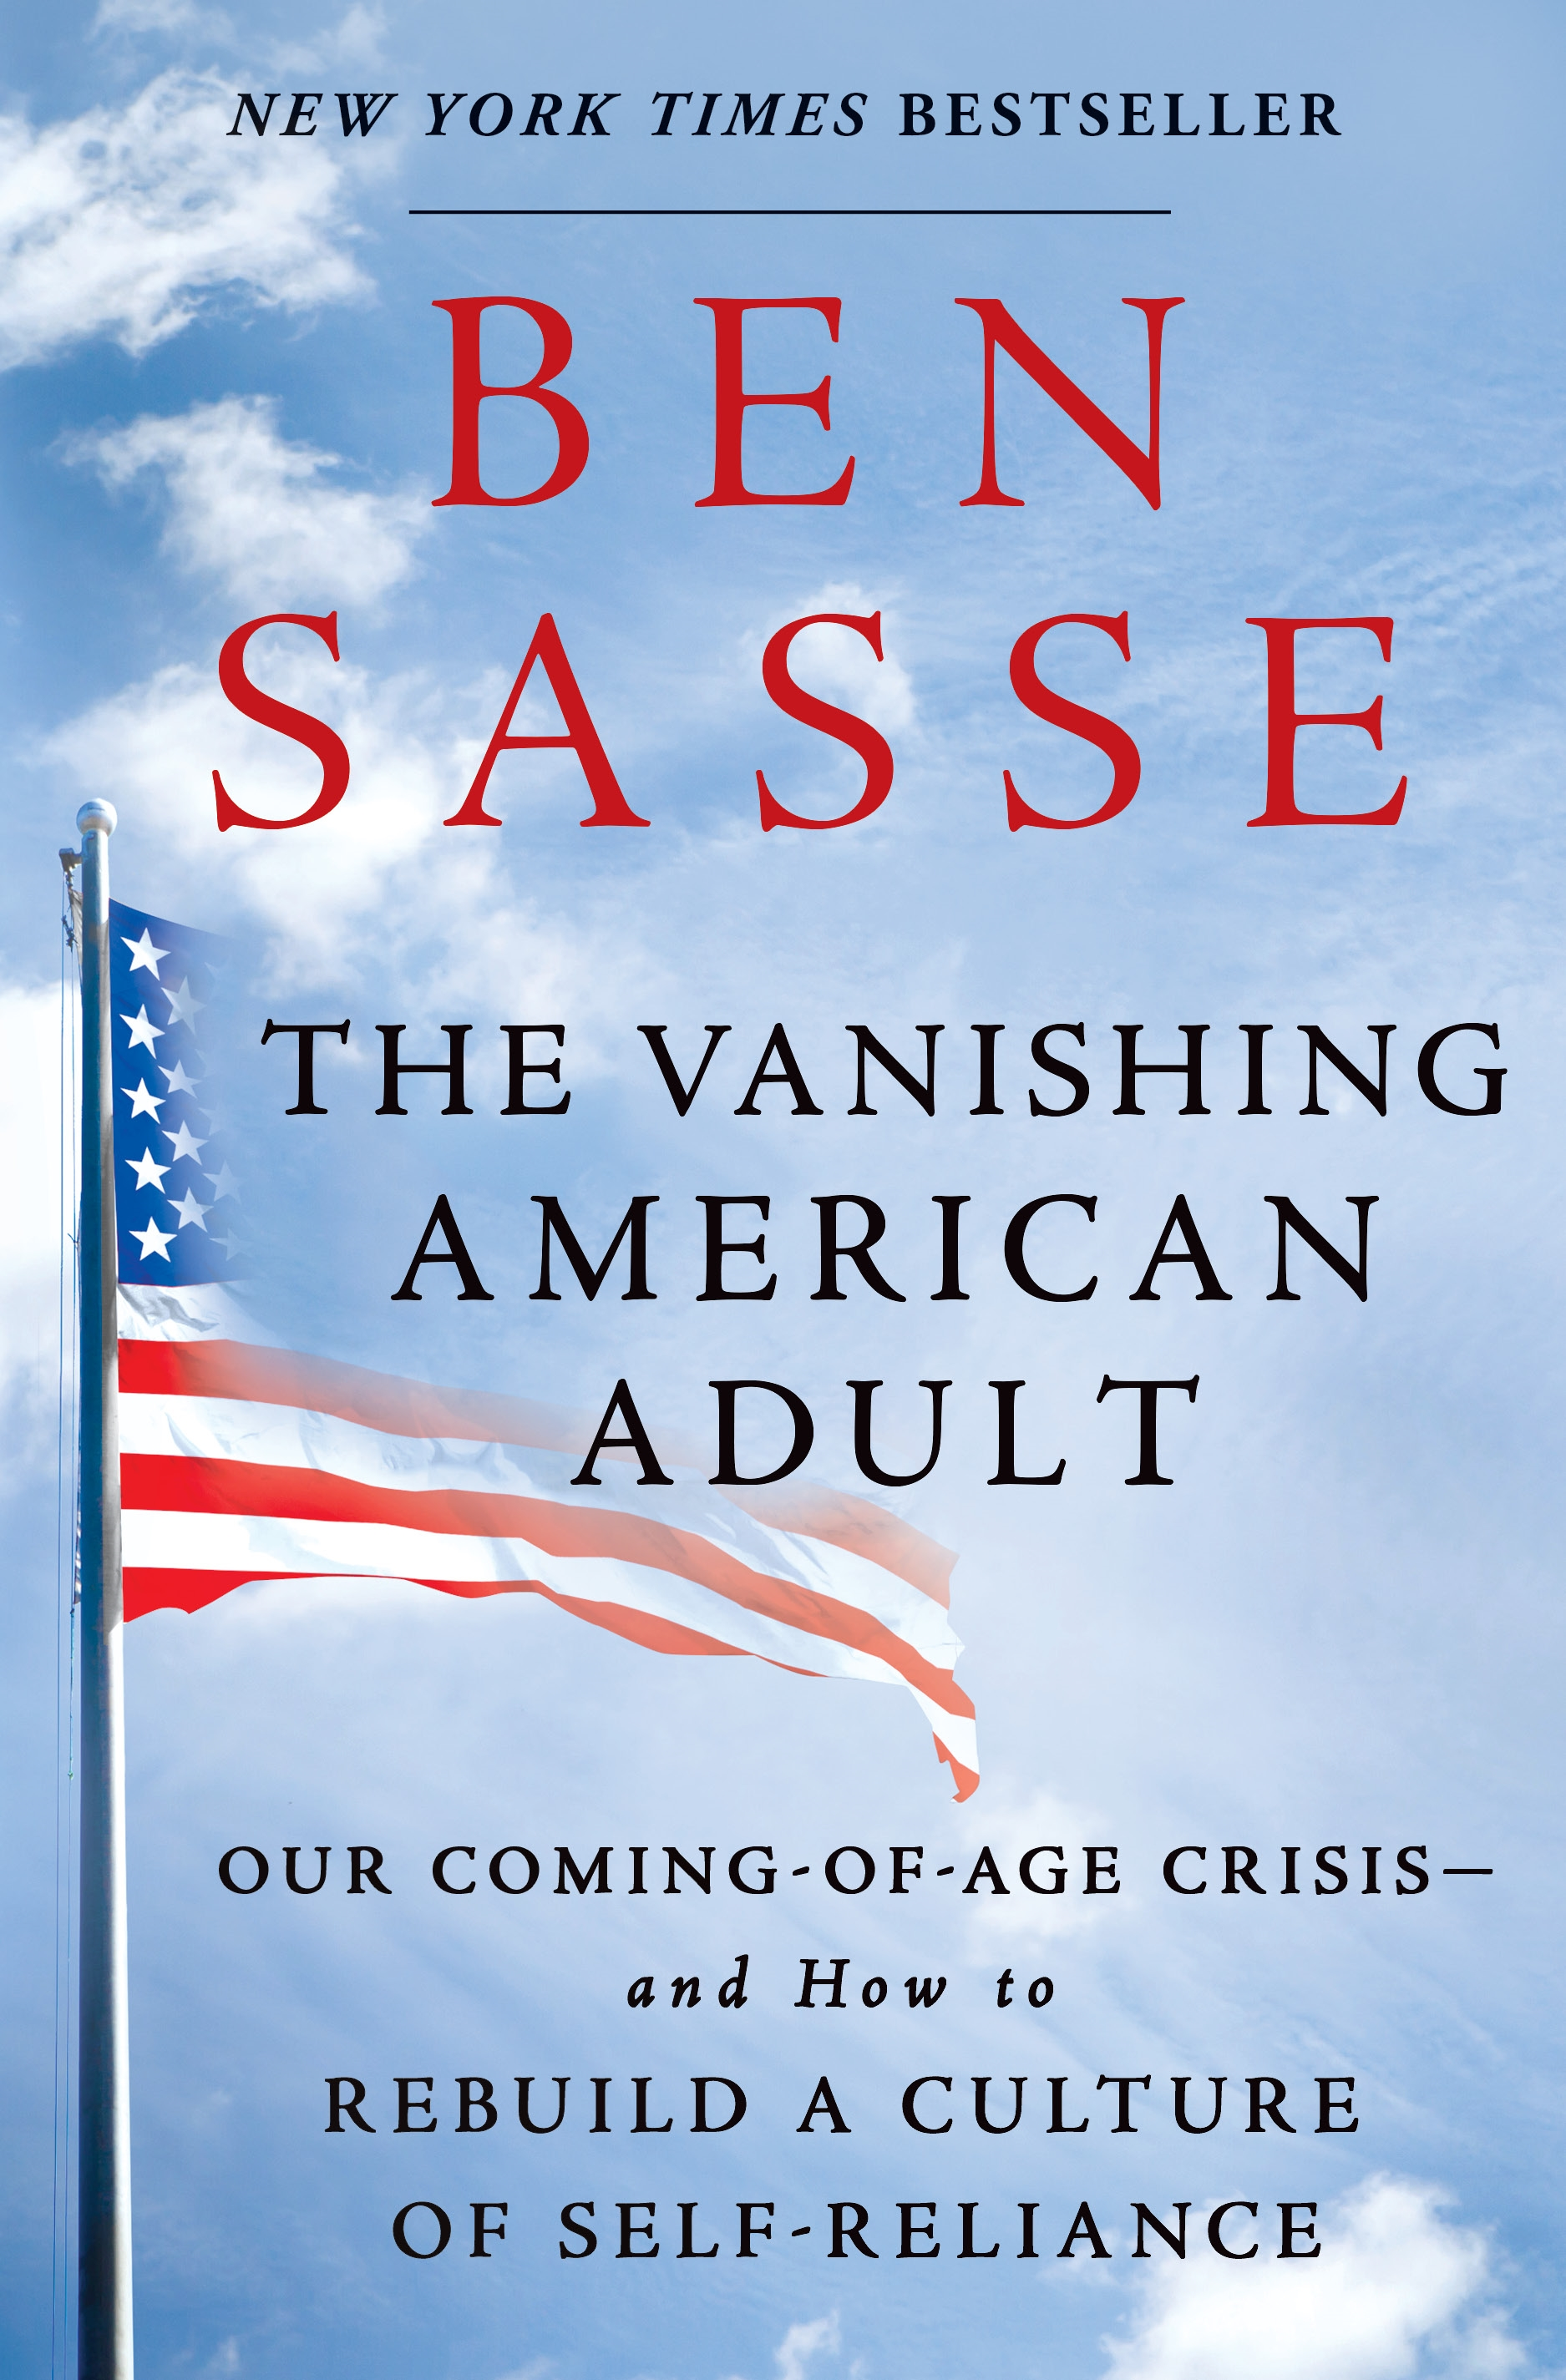 The Vanishing American Adult Our Coming-of-Age Crisis--and How to Rebuild a Culture of Self-Reliance